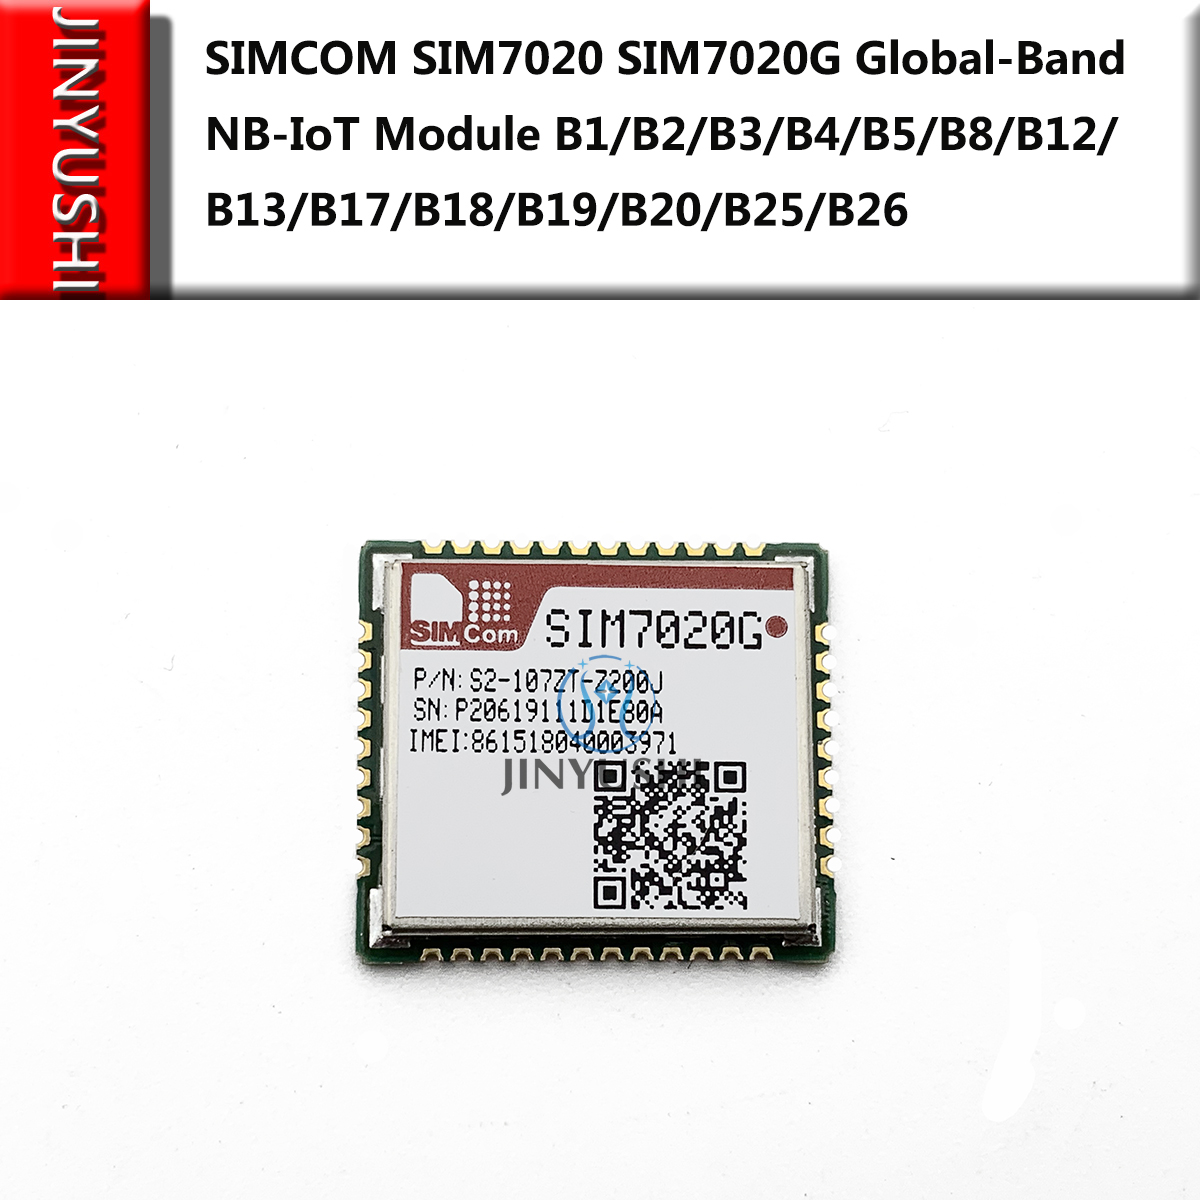 SIMCOM SIM7020G SIM7020 Global-Band SIMCOM NB-IoT Module Of SIM7020E SIM7020C Compatible With SIM800C